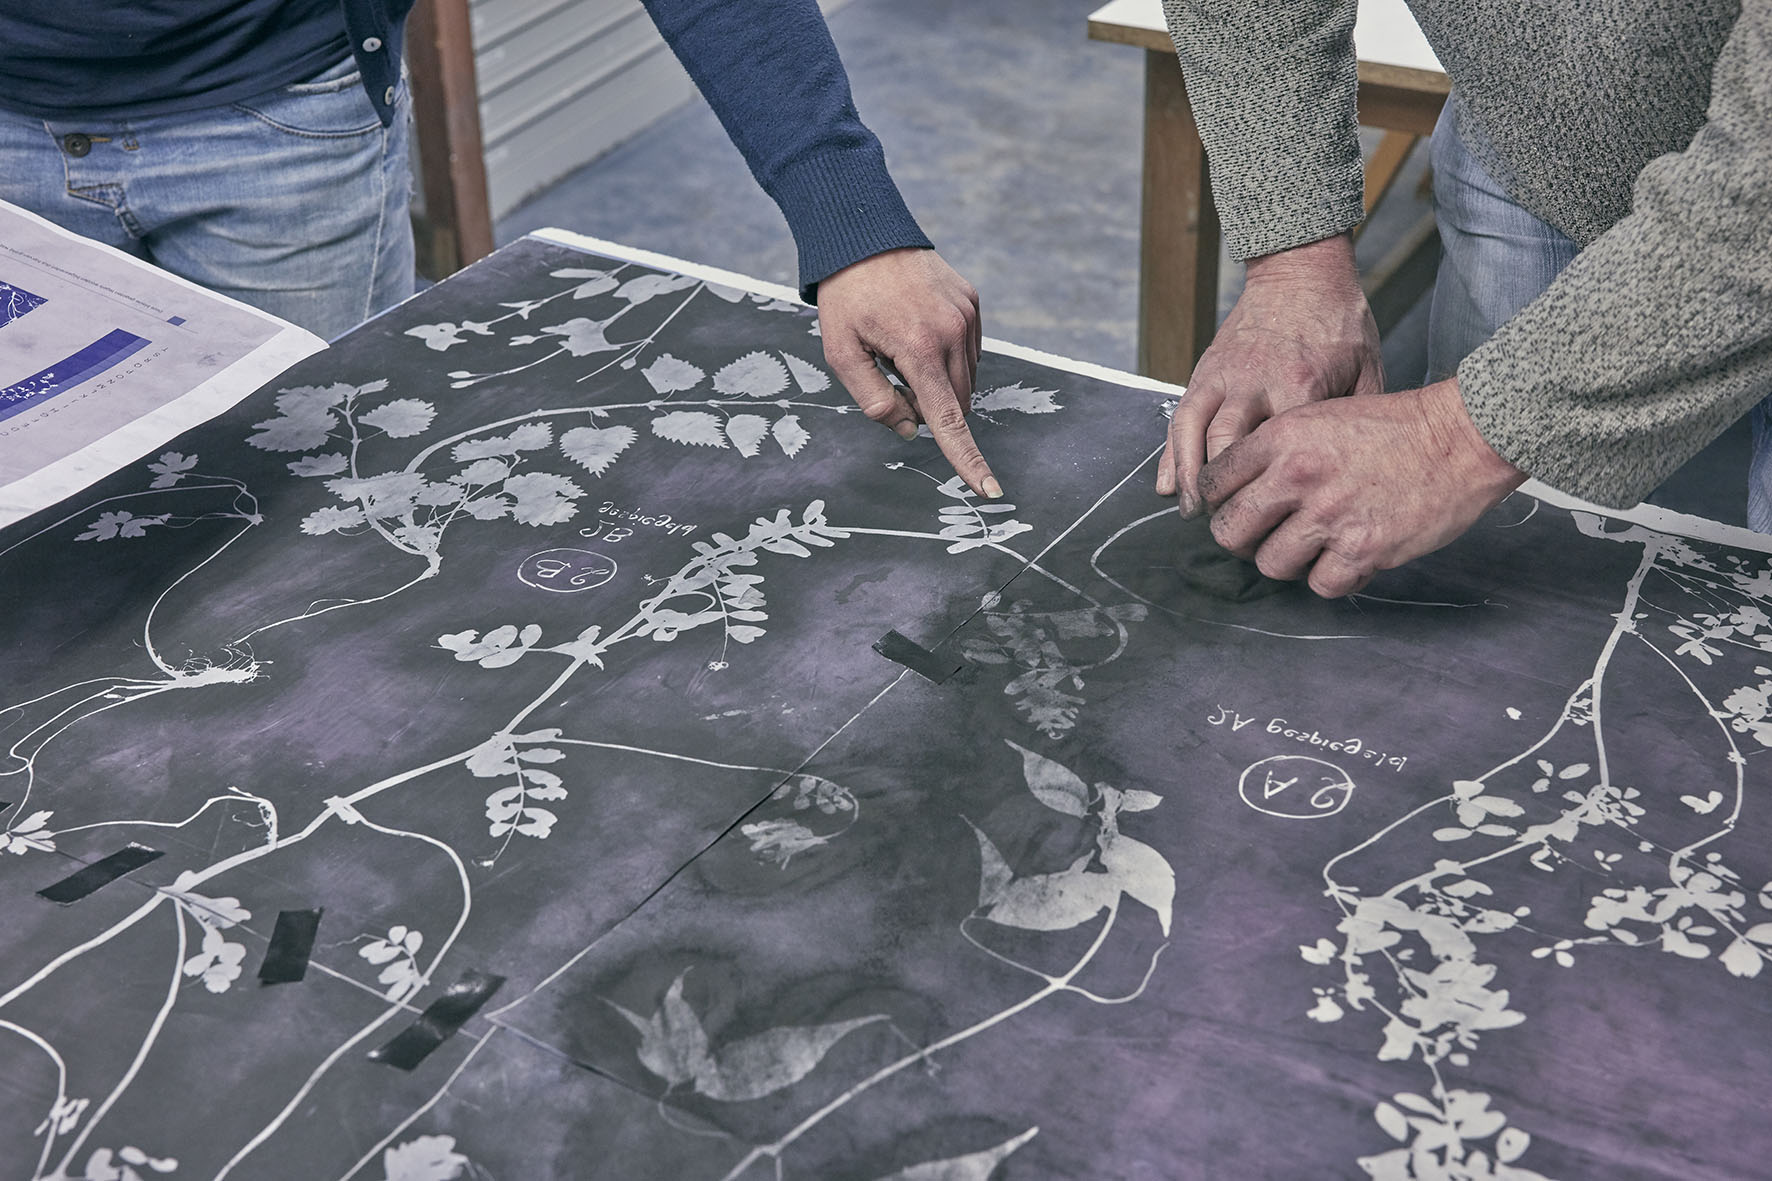 A layout design for Botanical Tiles with hands pointing